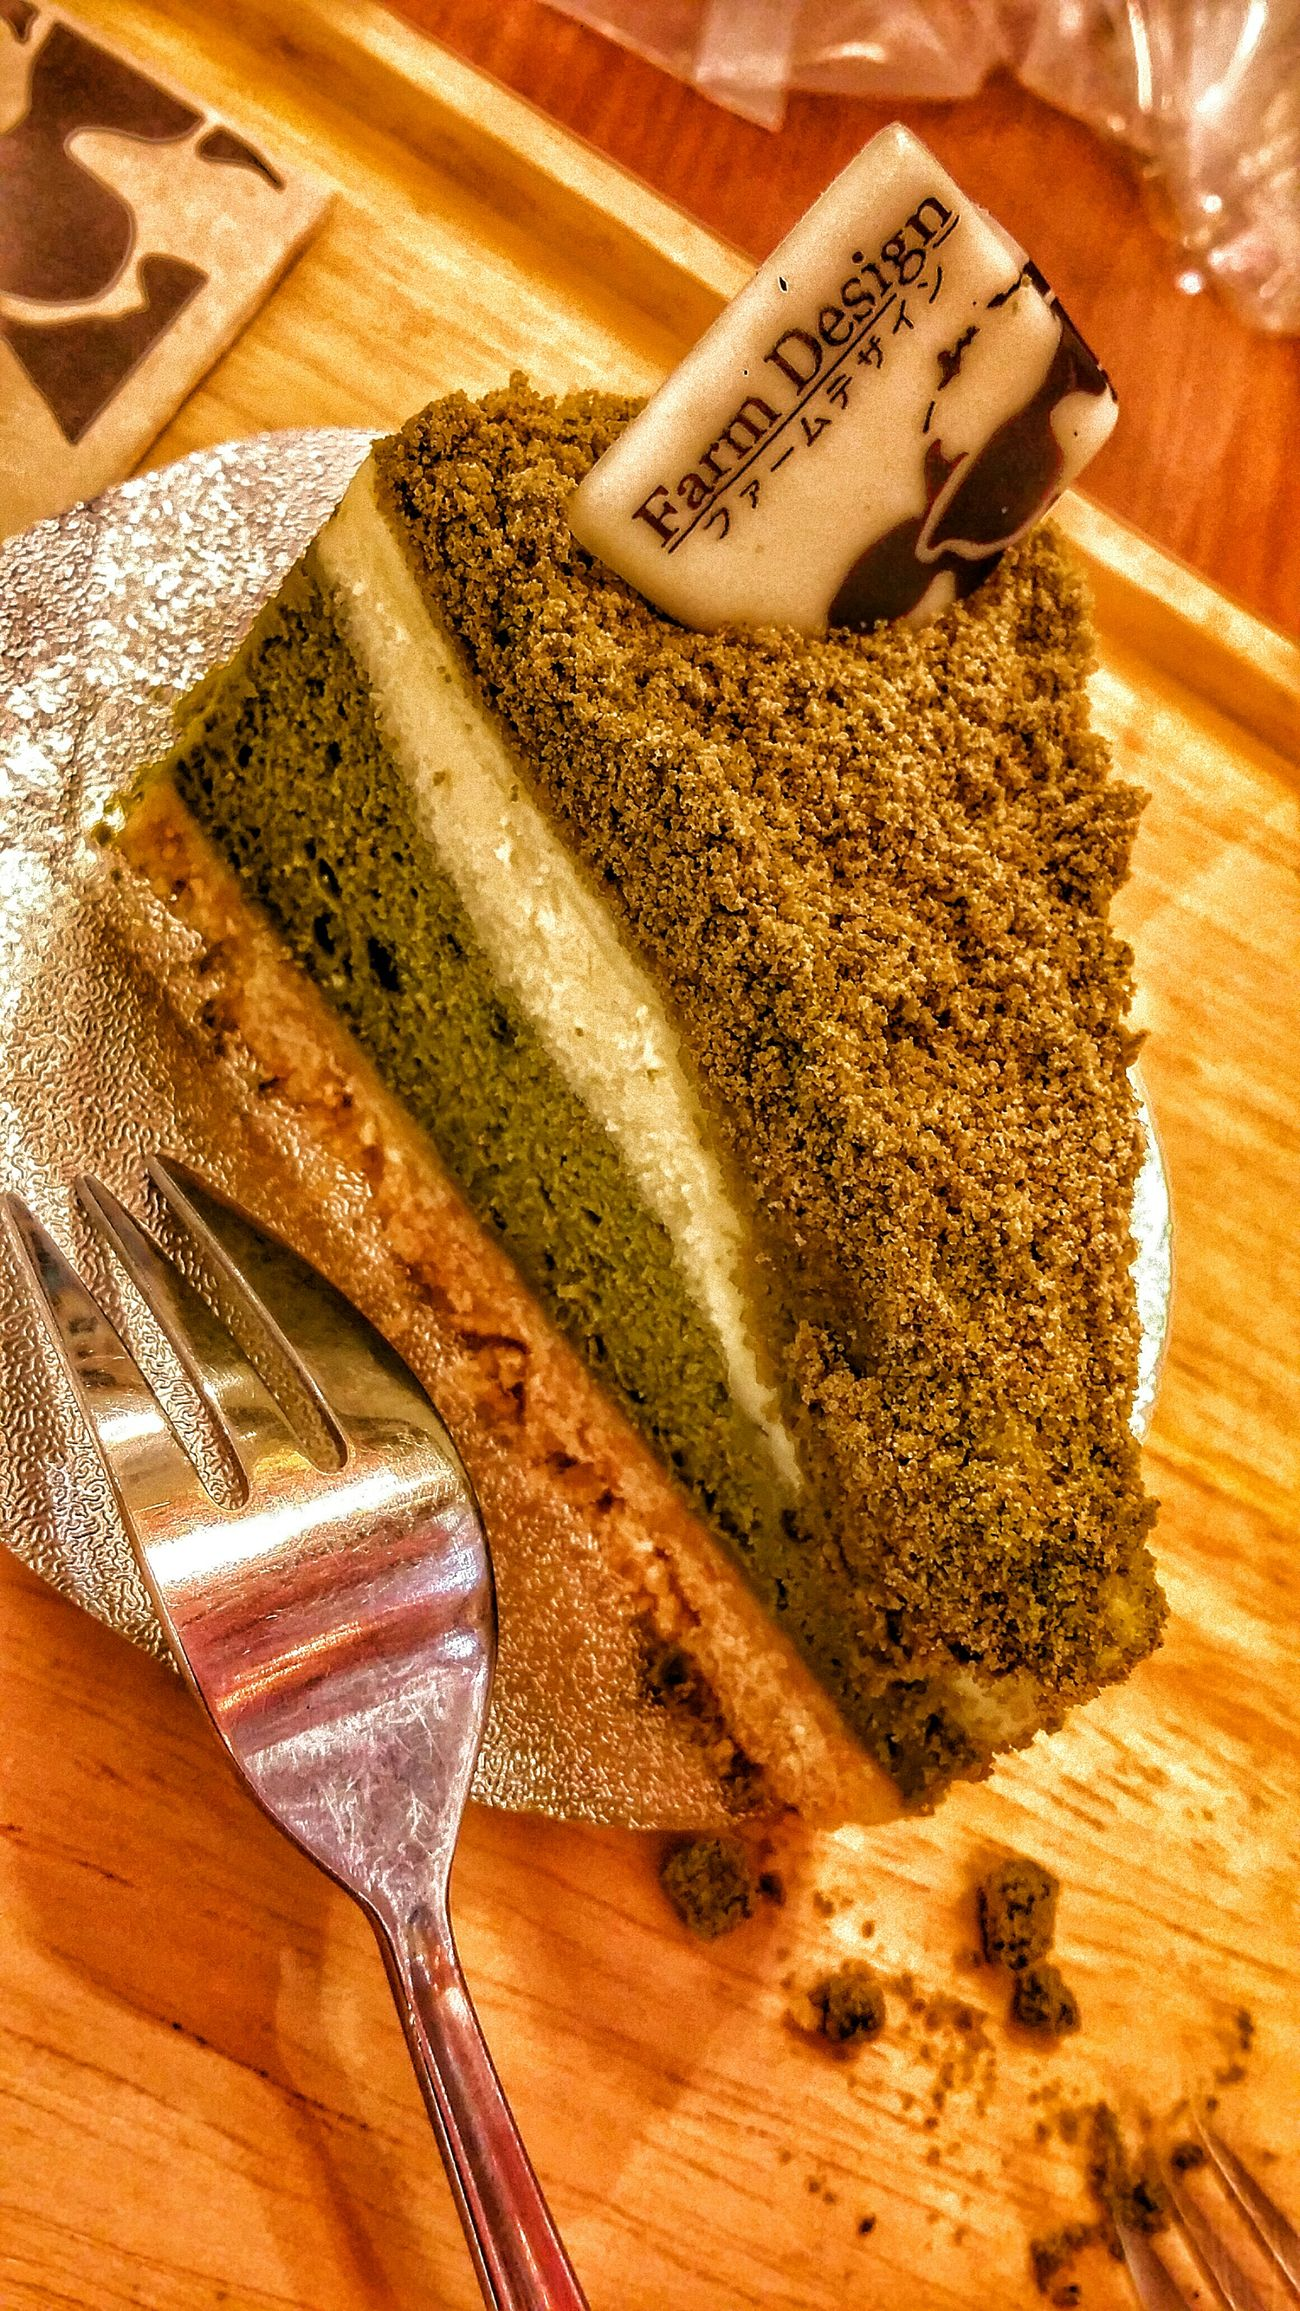 Greentea cake Farmdesign Centralplaza Central Ladprao